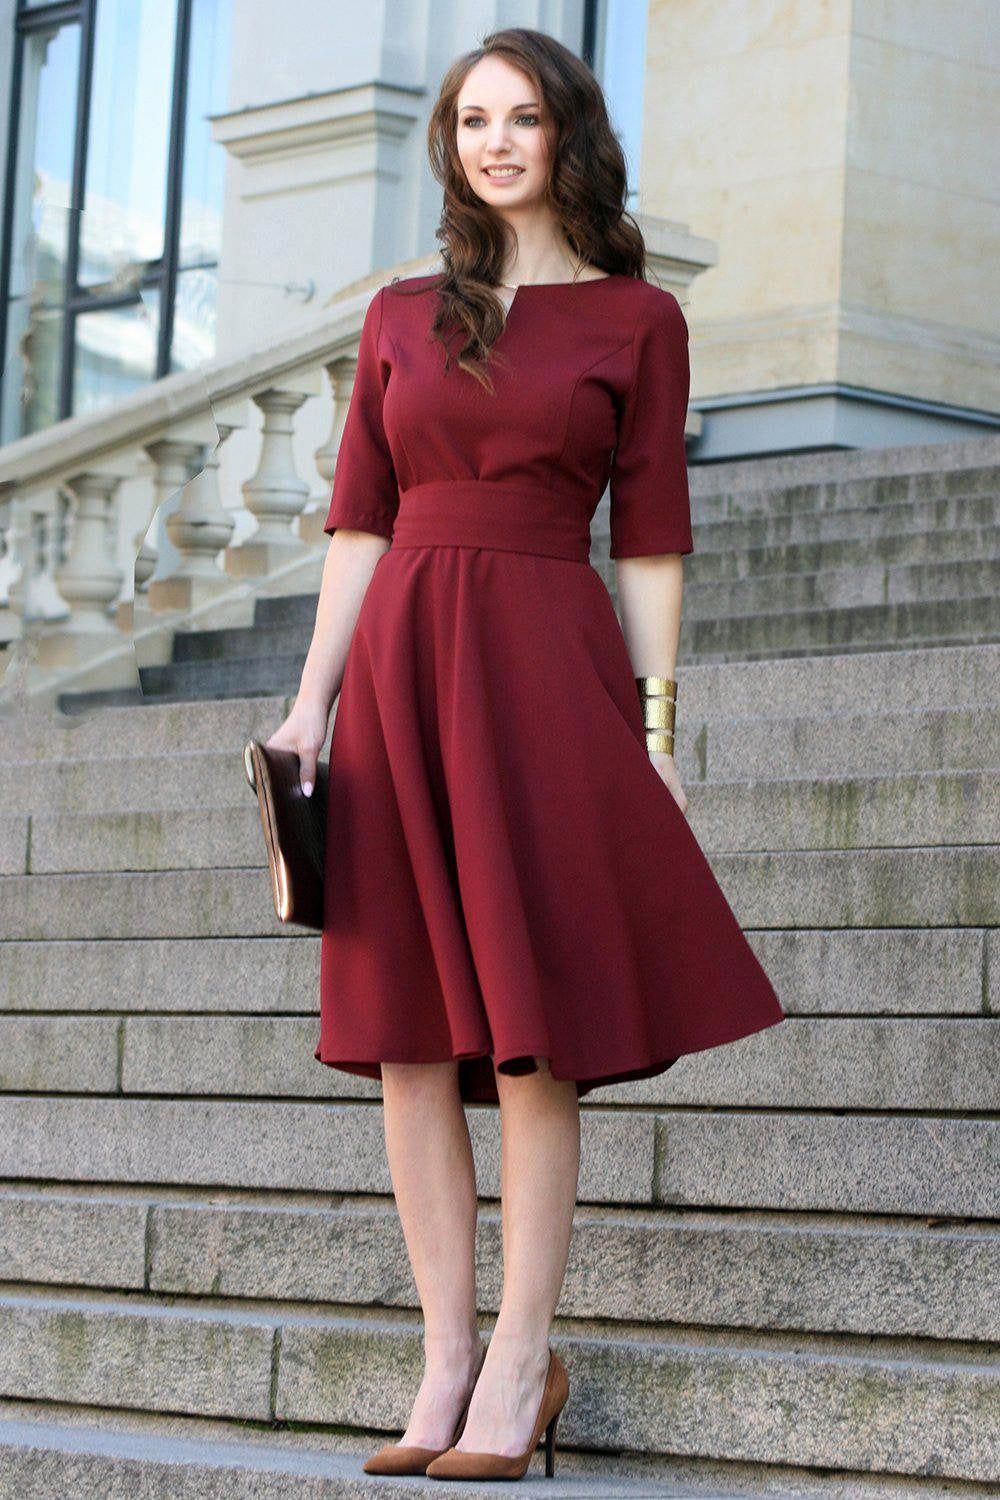 Excellent women dresses are readily available on our internet site